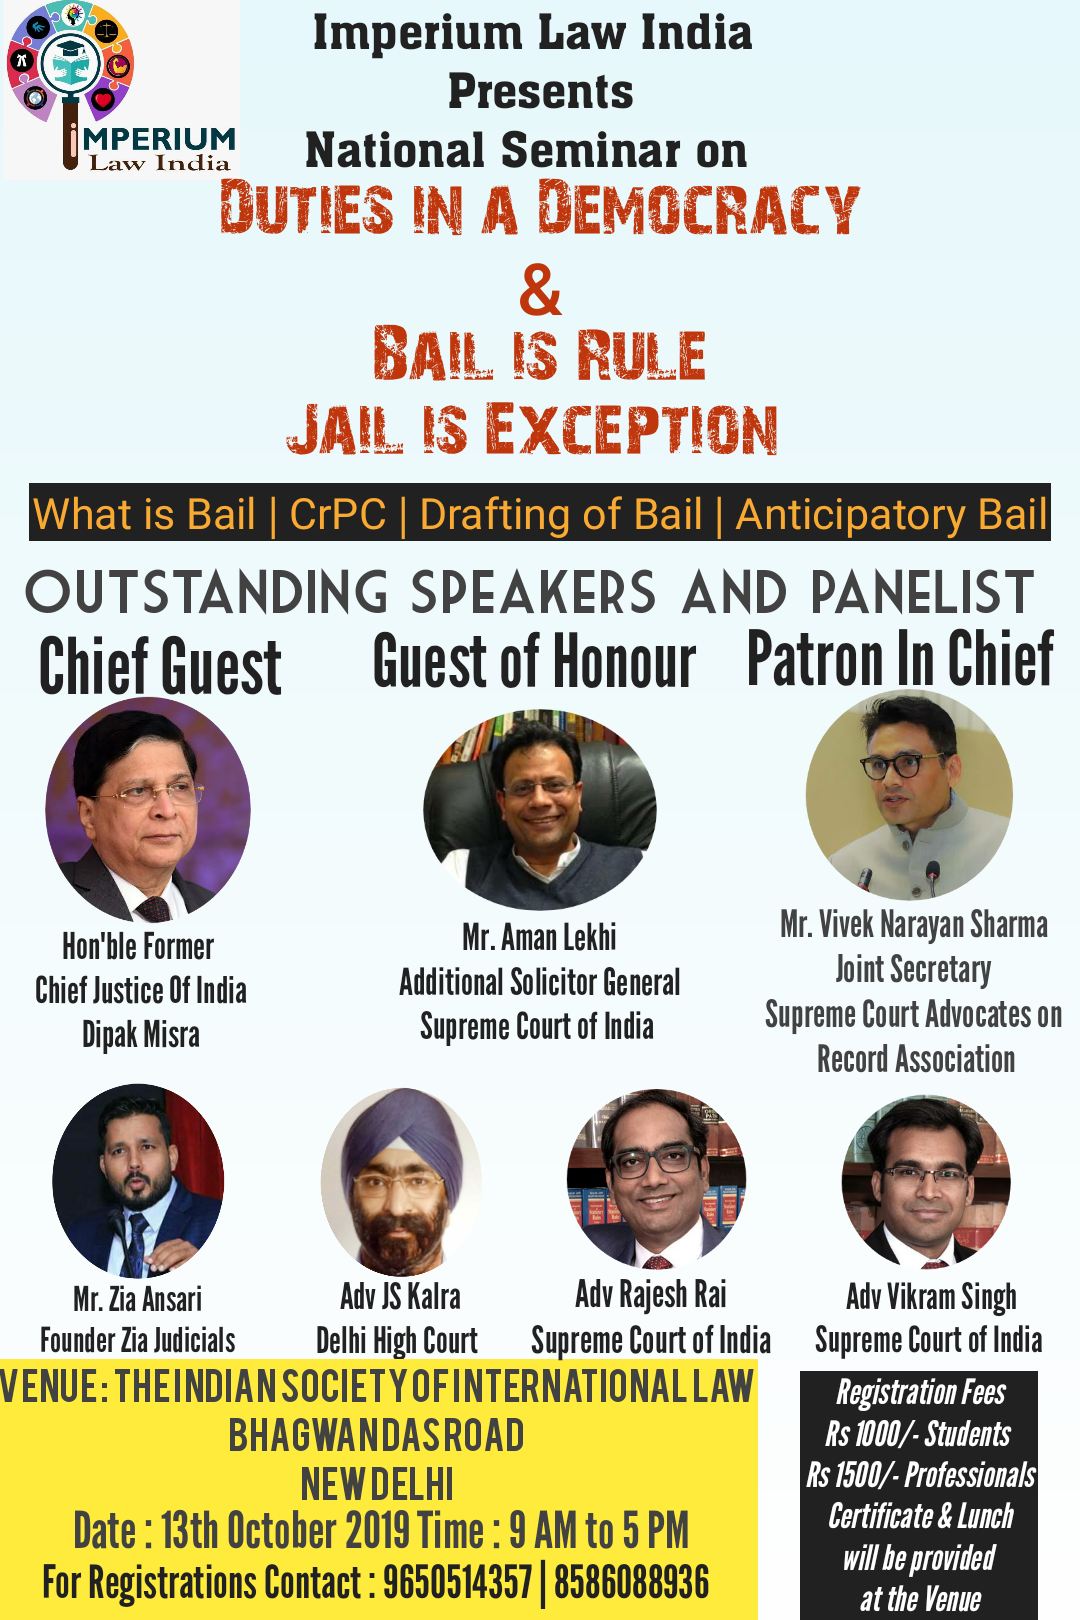 Seminar on Bail is rule and Jail is exception by Imperium Law India